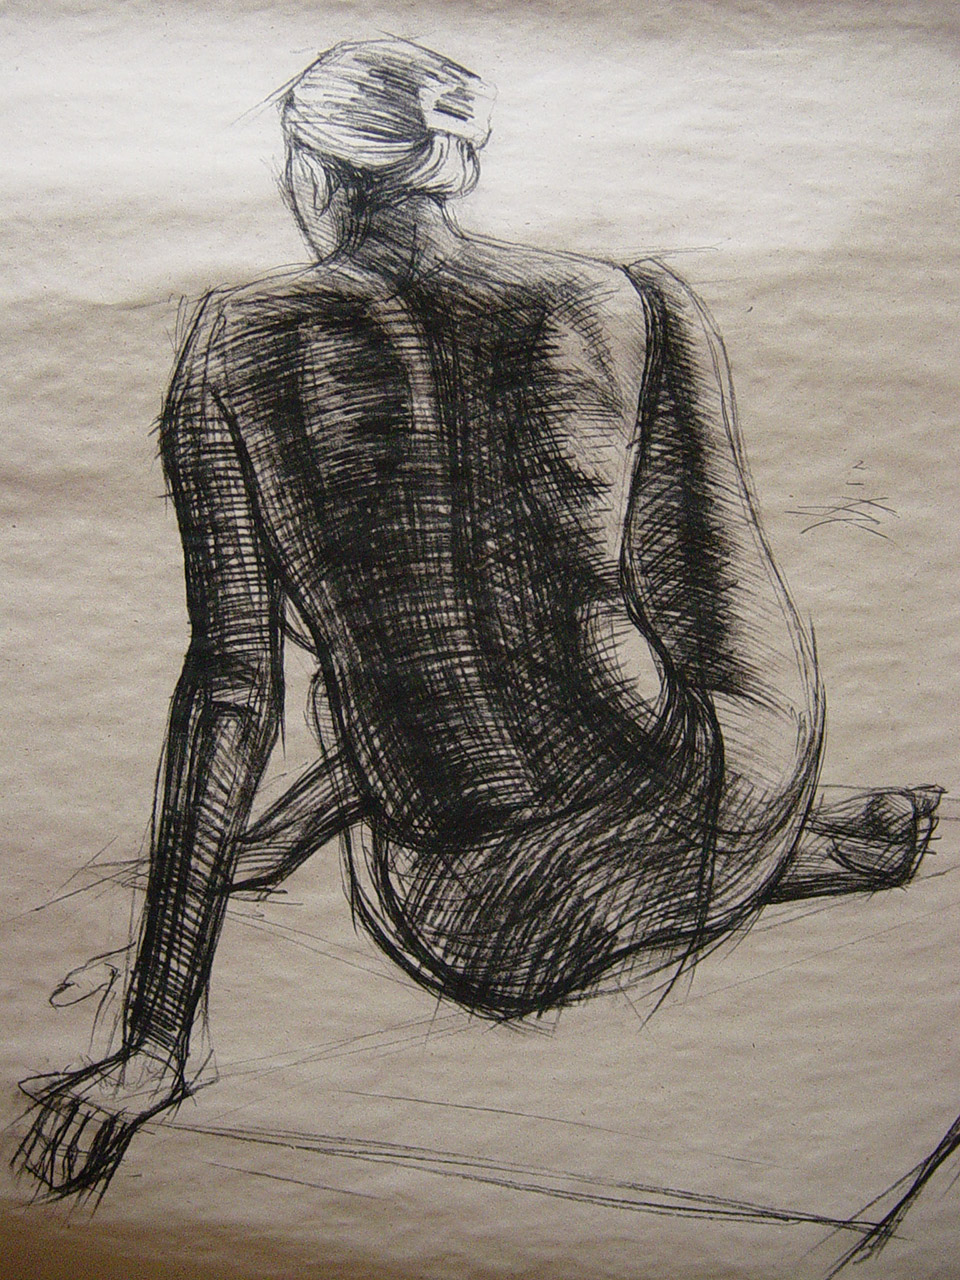 technique: charcoal dimensions: 160 x 100 cm year: 1998